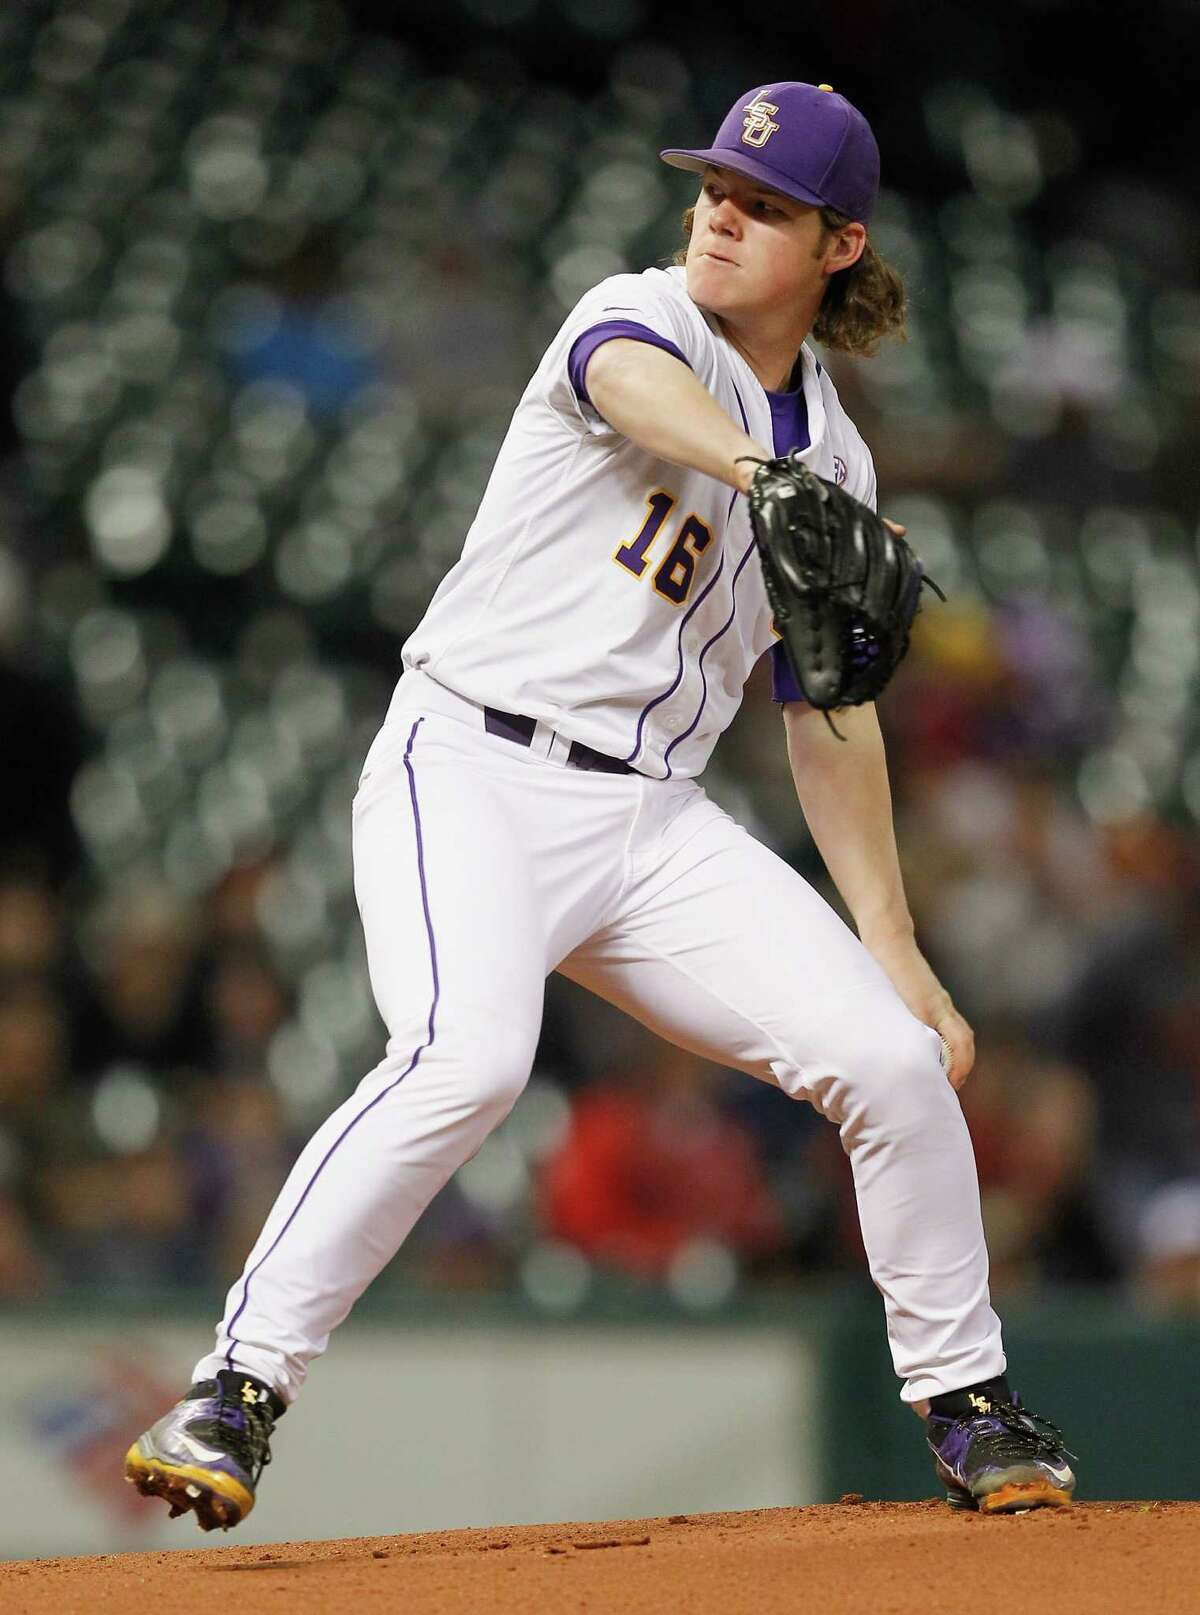 LSU pitcher Jared Poche' (16) throws against the Houston Cougars in the first inning during the College Classic on March 6, 2015 at Minute Maid Park in Houston, Texas.